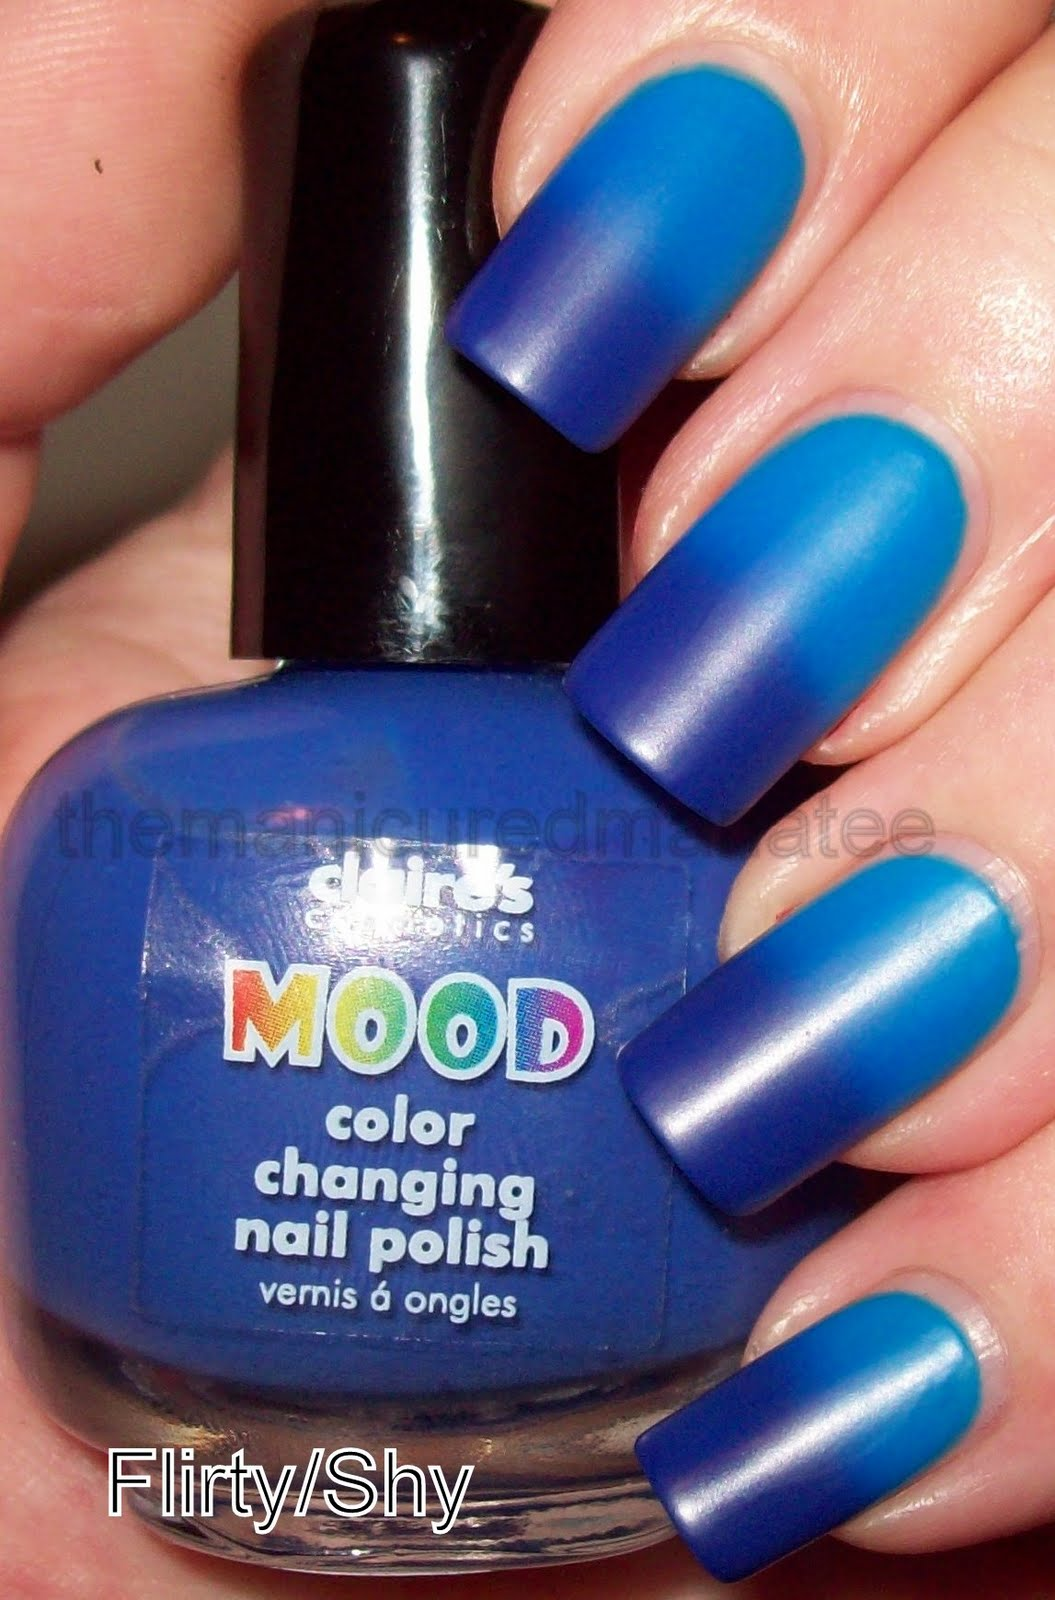 The Manicured Manatee: Claire's Mood Changing Polish ...